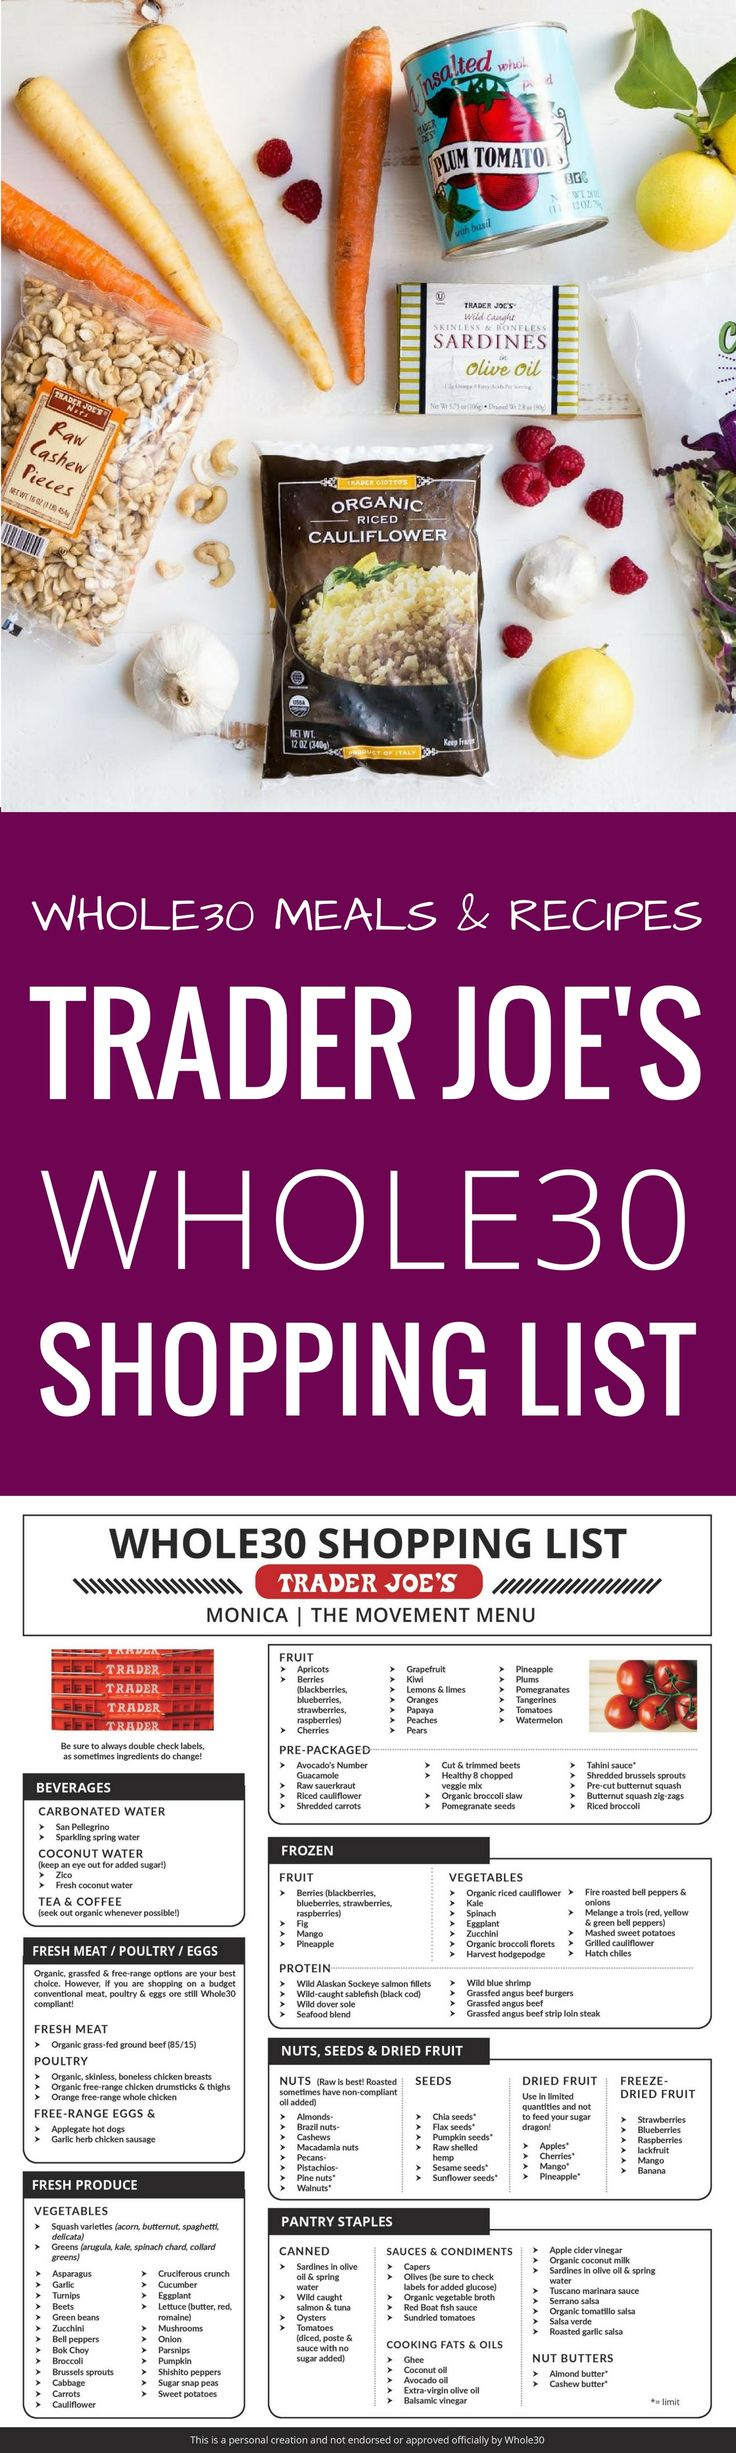 Best Trader Joe's Whole30 Shopping List. Complete with tips and tricks on how to prep for and succeed during your Whole30. Eat like a whole30 QUEEN! Free shopping list & shopping guide printout! Whole30 shopping list. Whole30 Trader Joe's shopping list. W